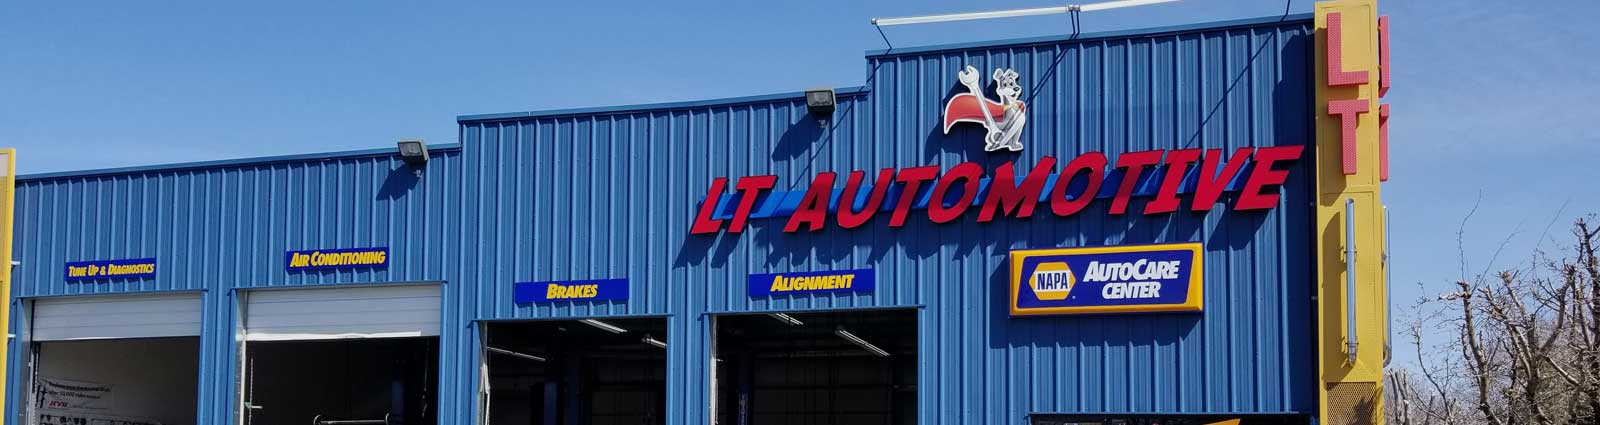 LT Automotive